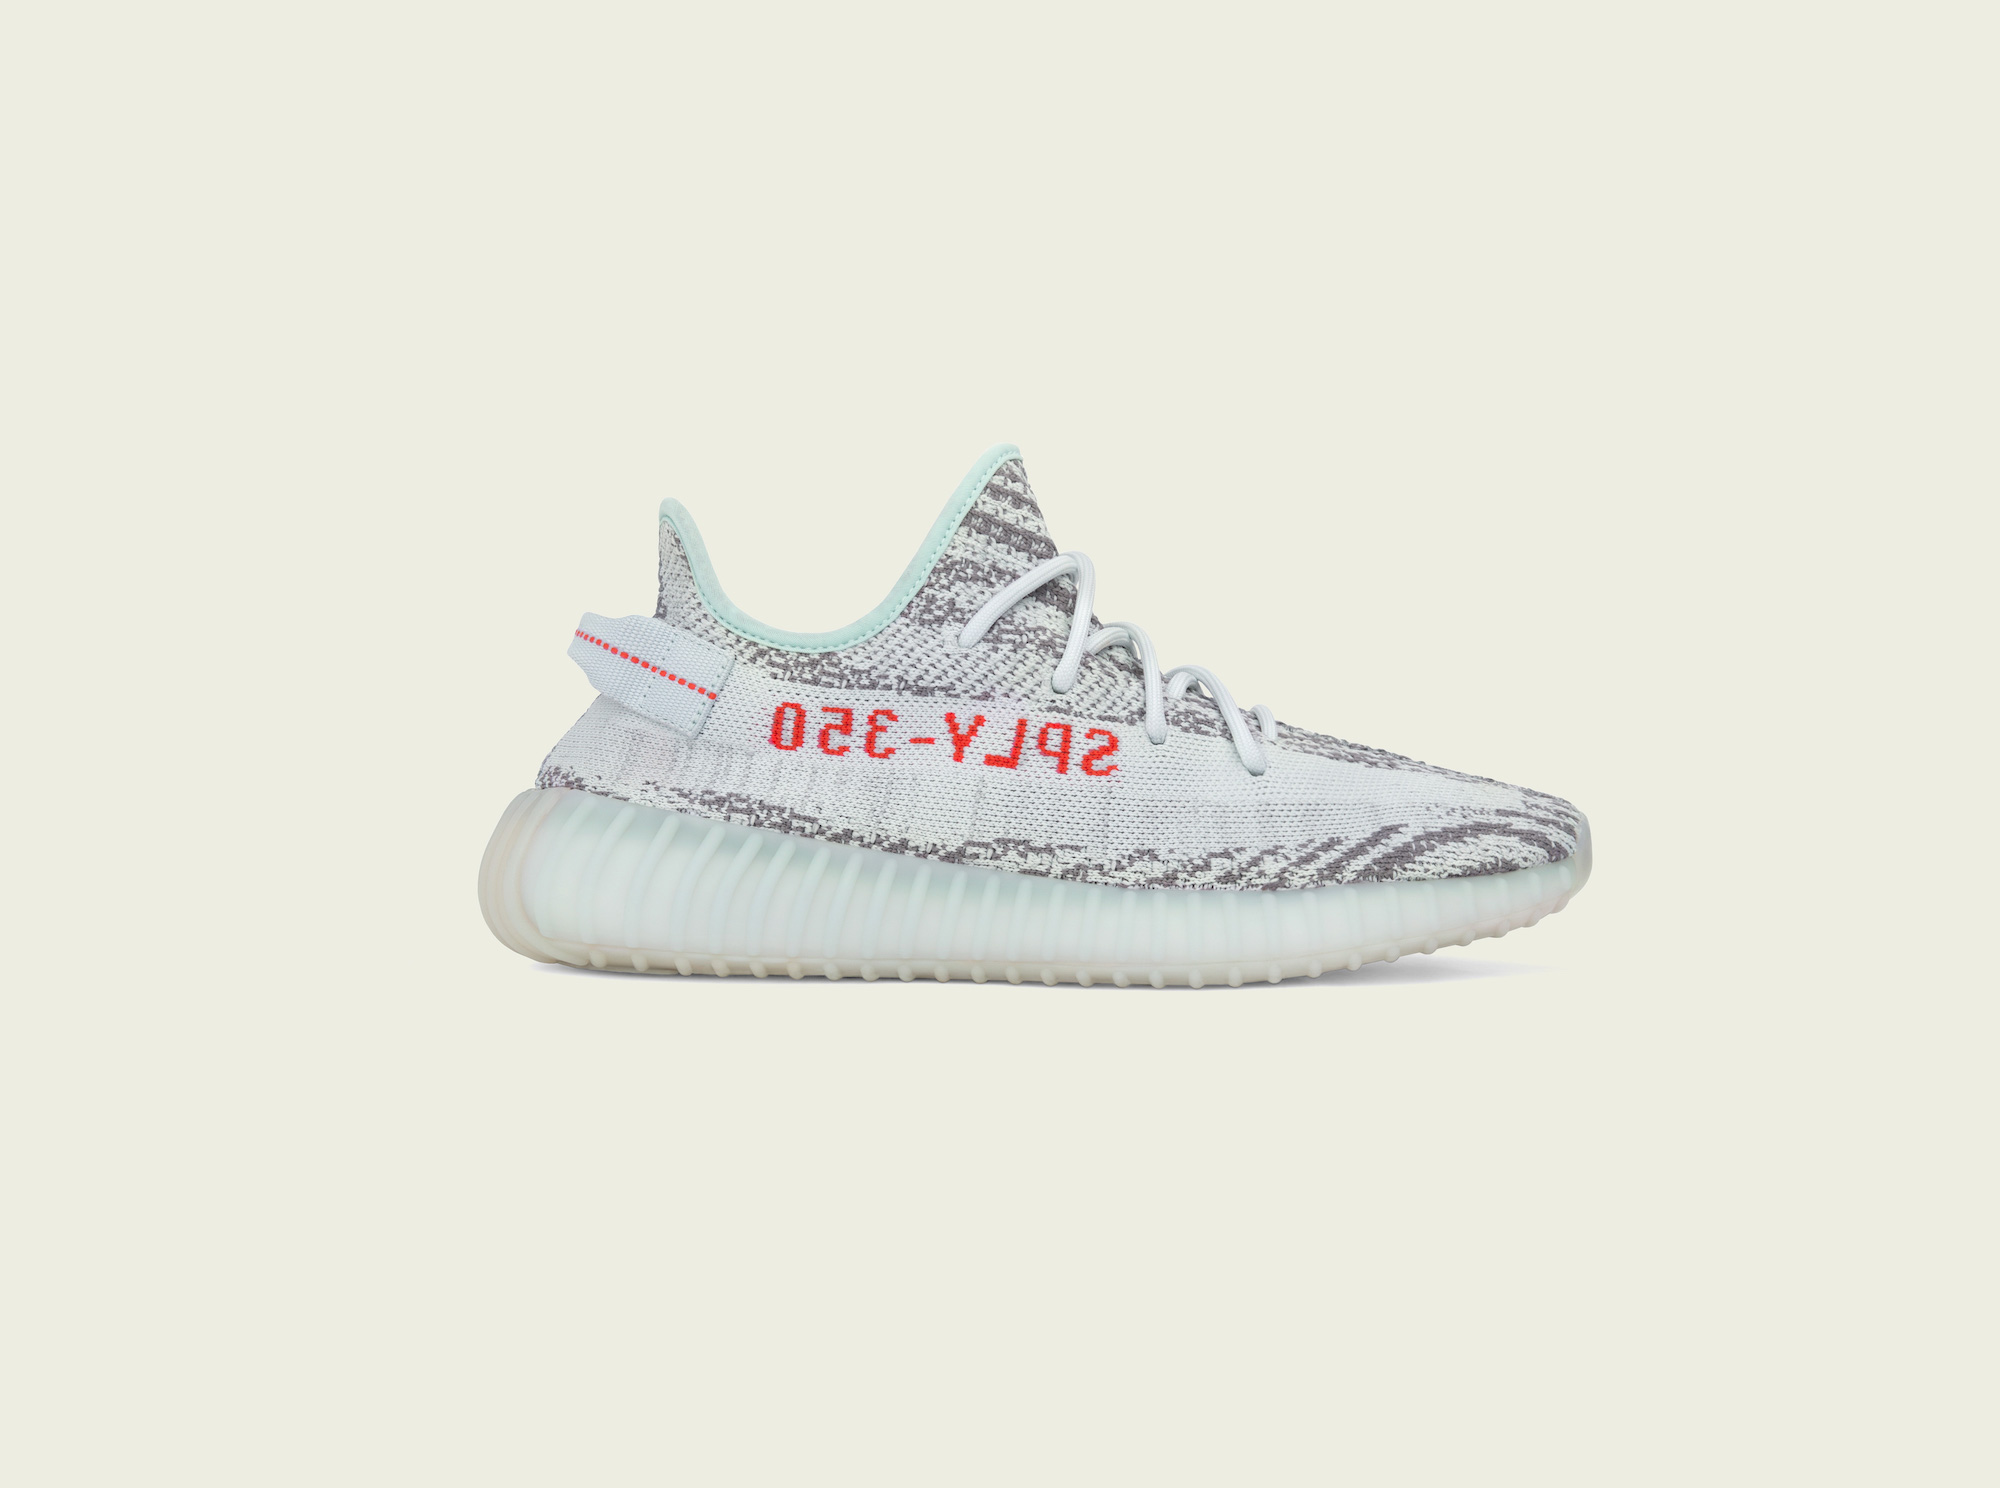 adidas Announces Yeezy Boost 350 V2 Release Dates for